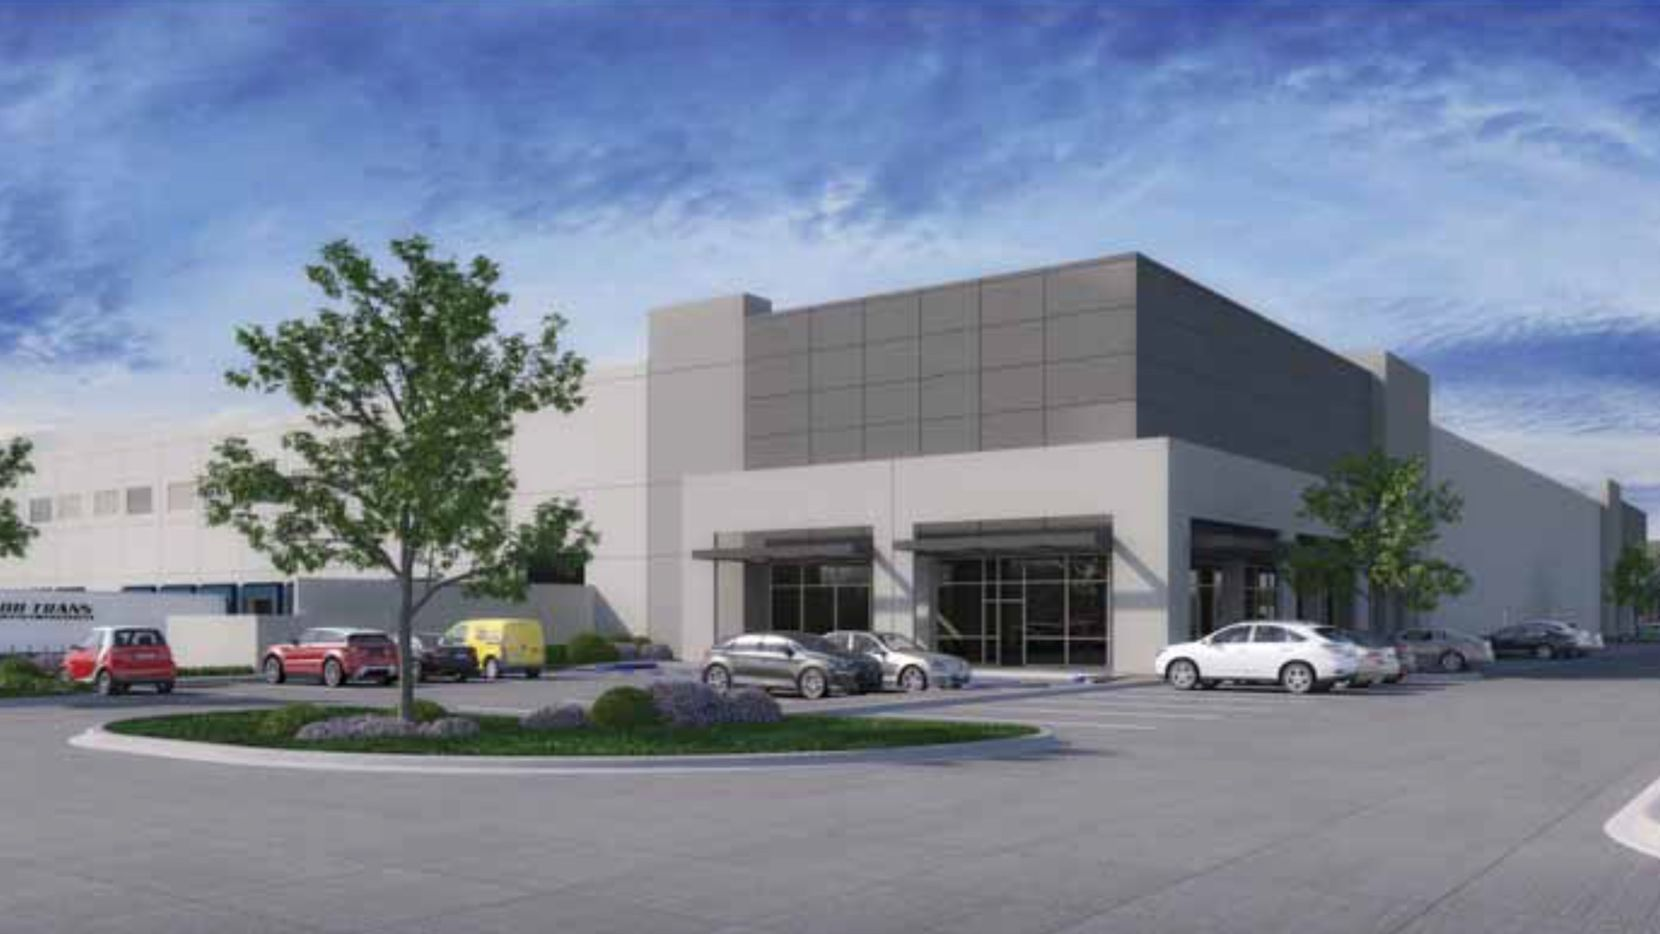 The new business park will be called Shiloh Distribution Center.